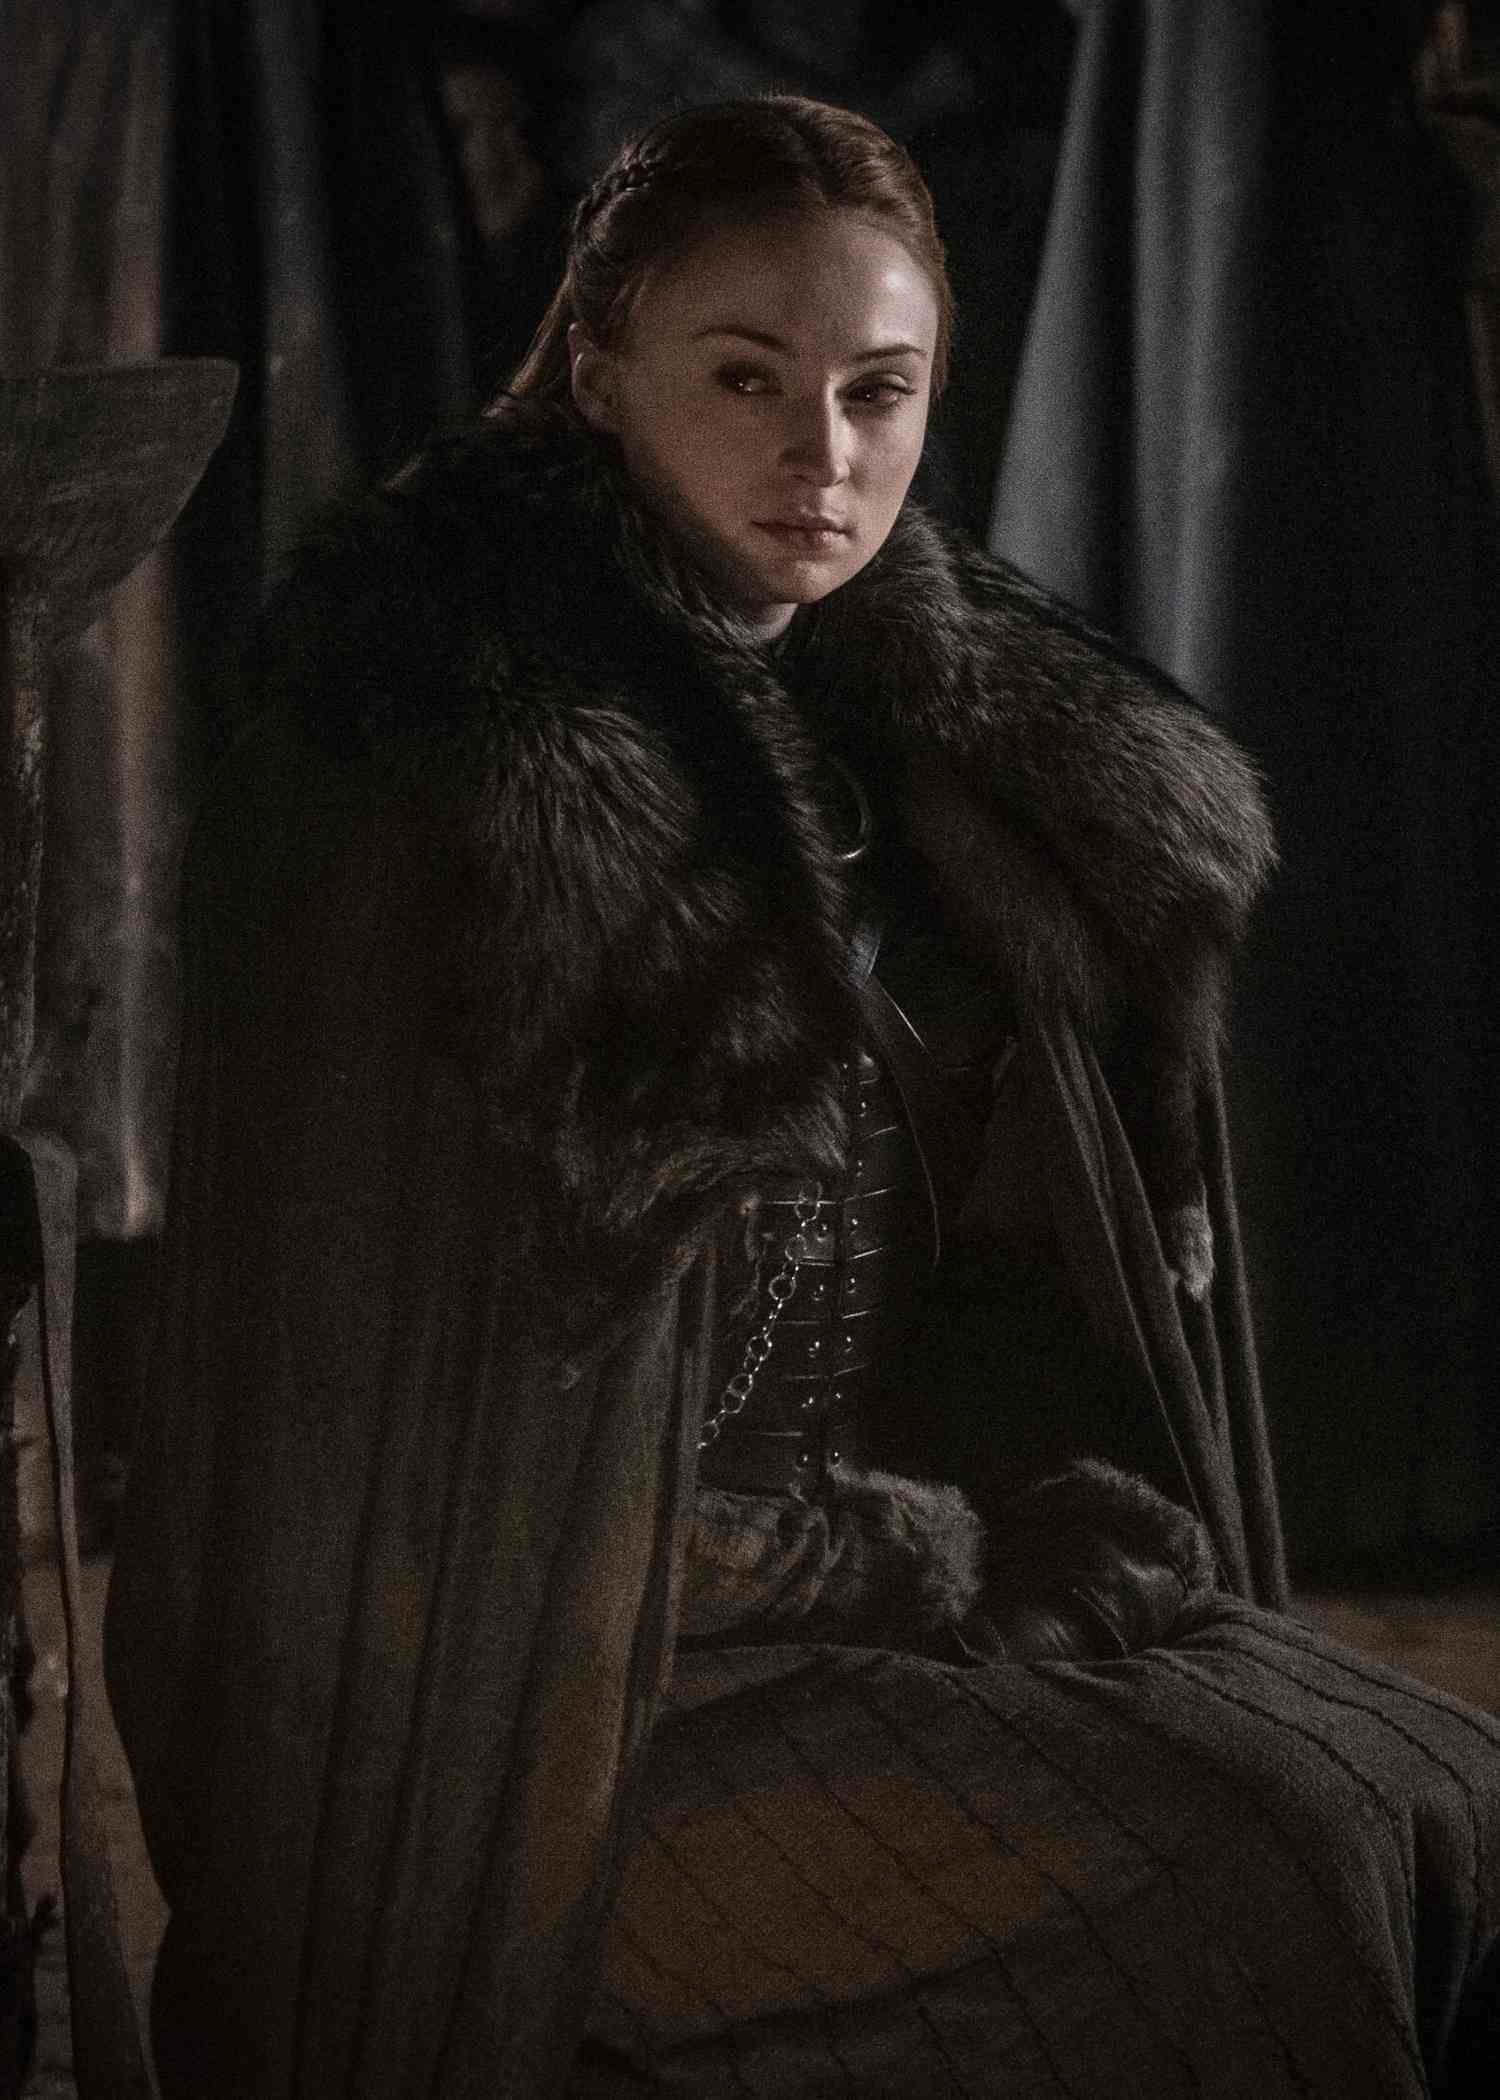 Sophie Turner as Sansa Stark. Courtesy HBO.